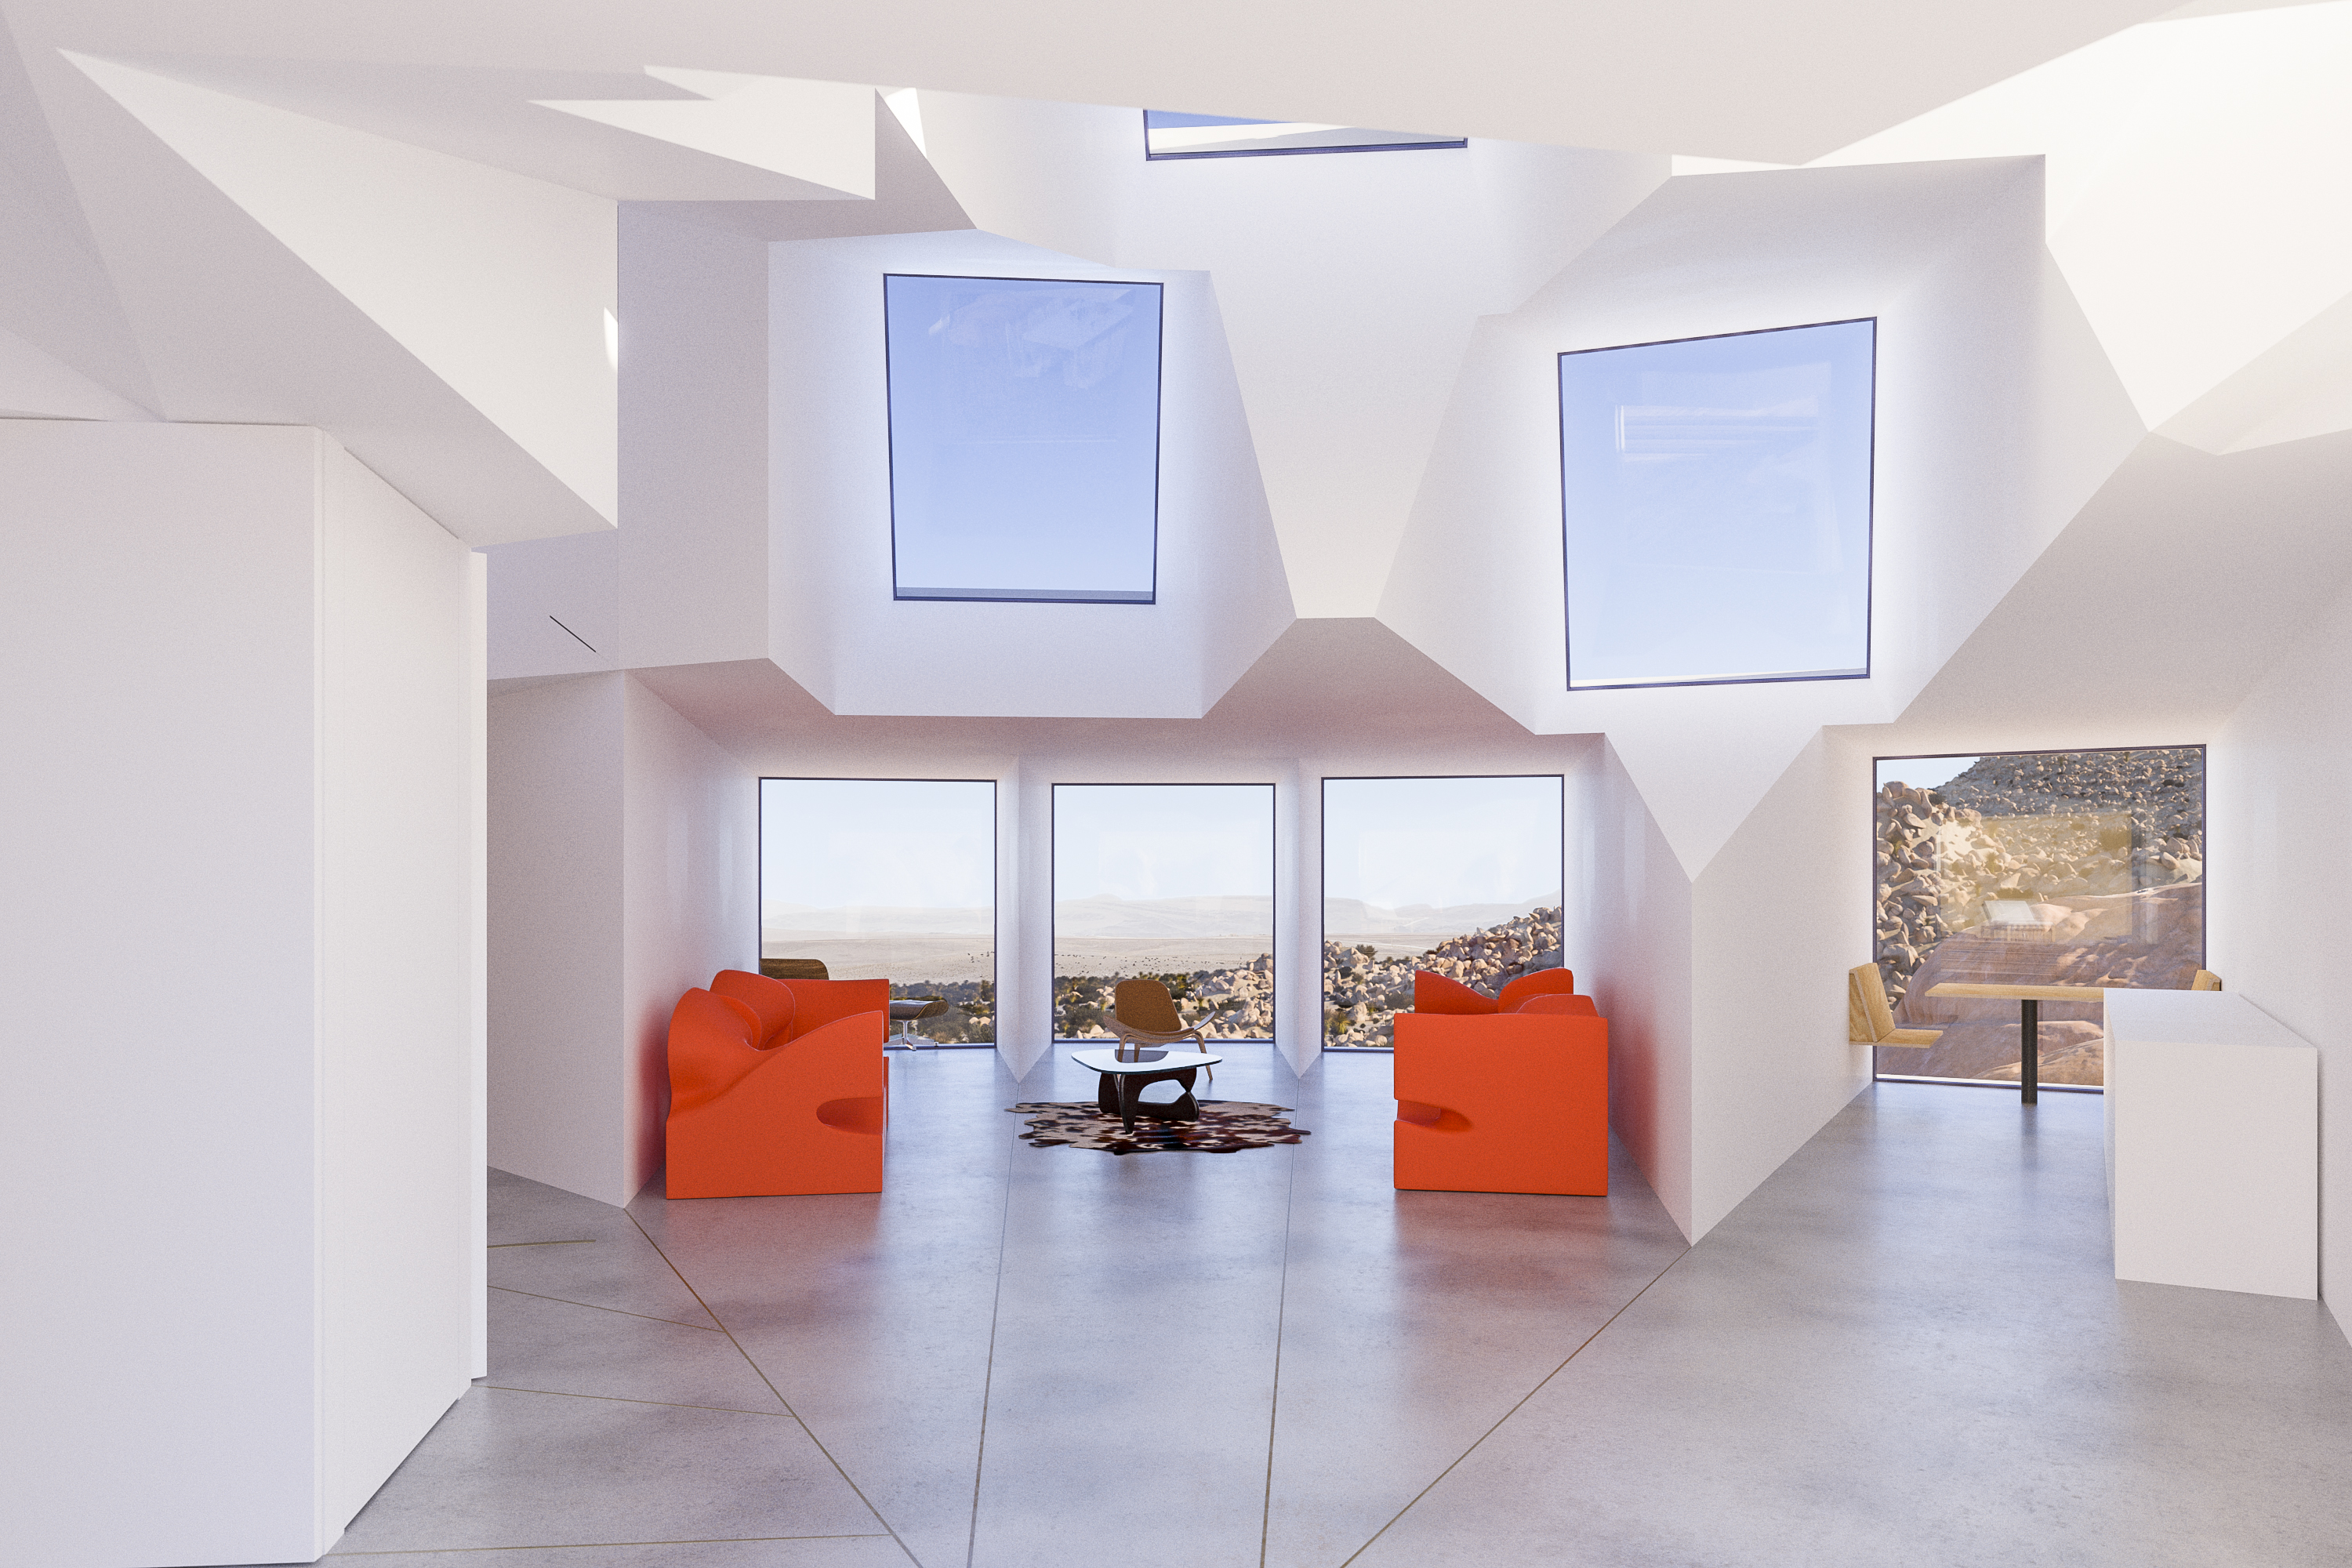 Joshua Tree container home rises in the California desert - CNN Style